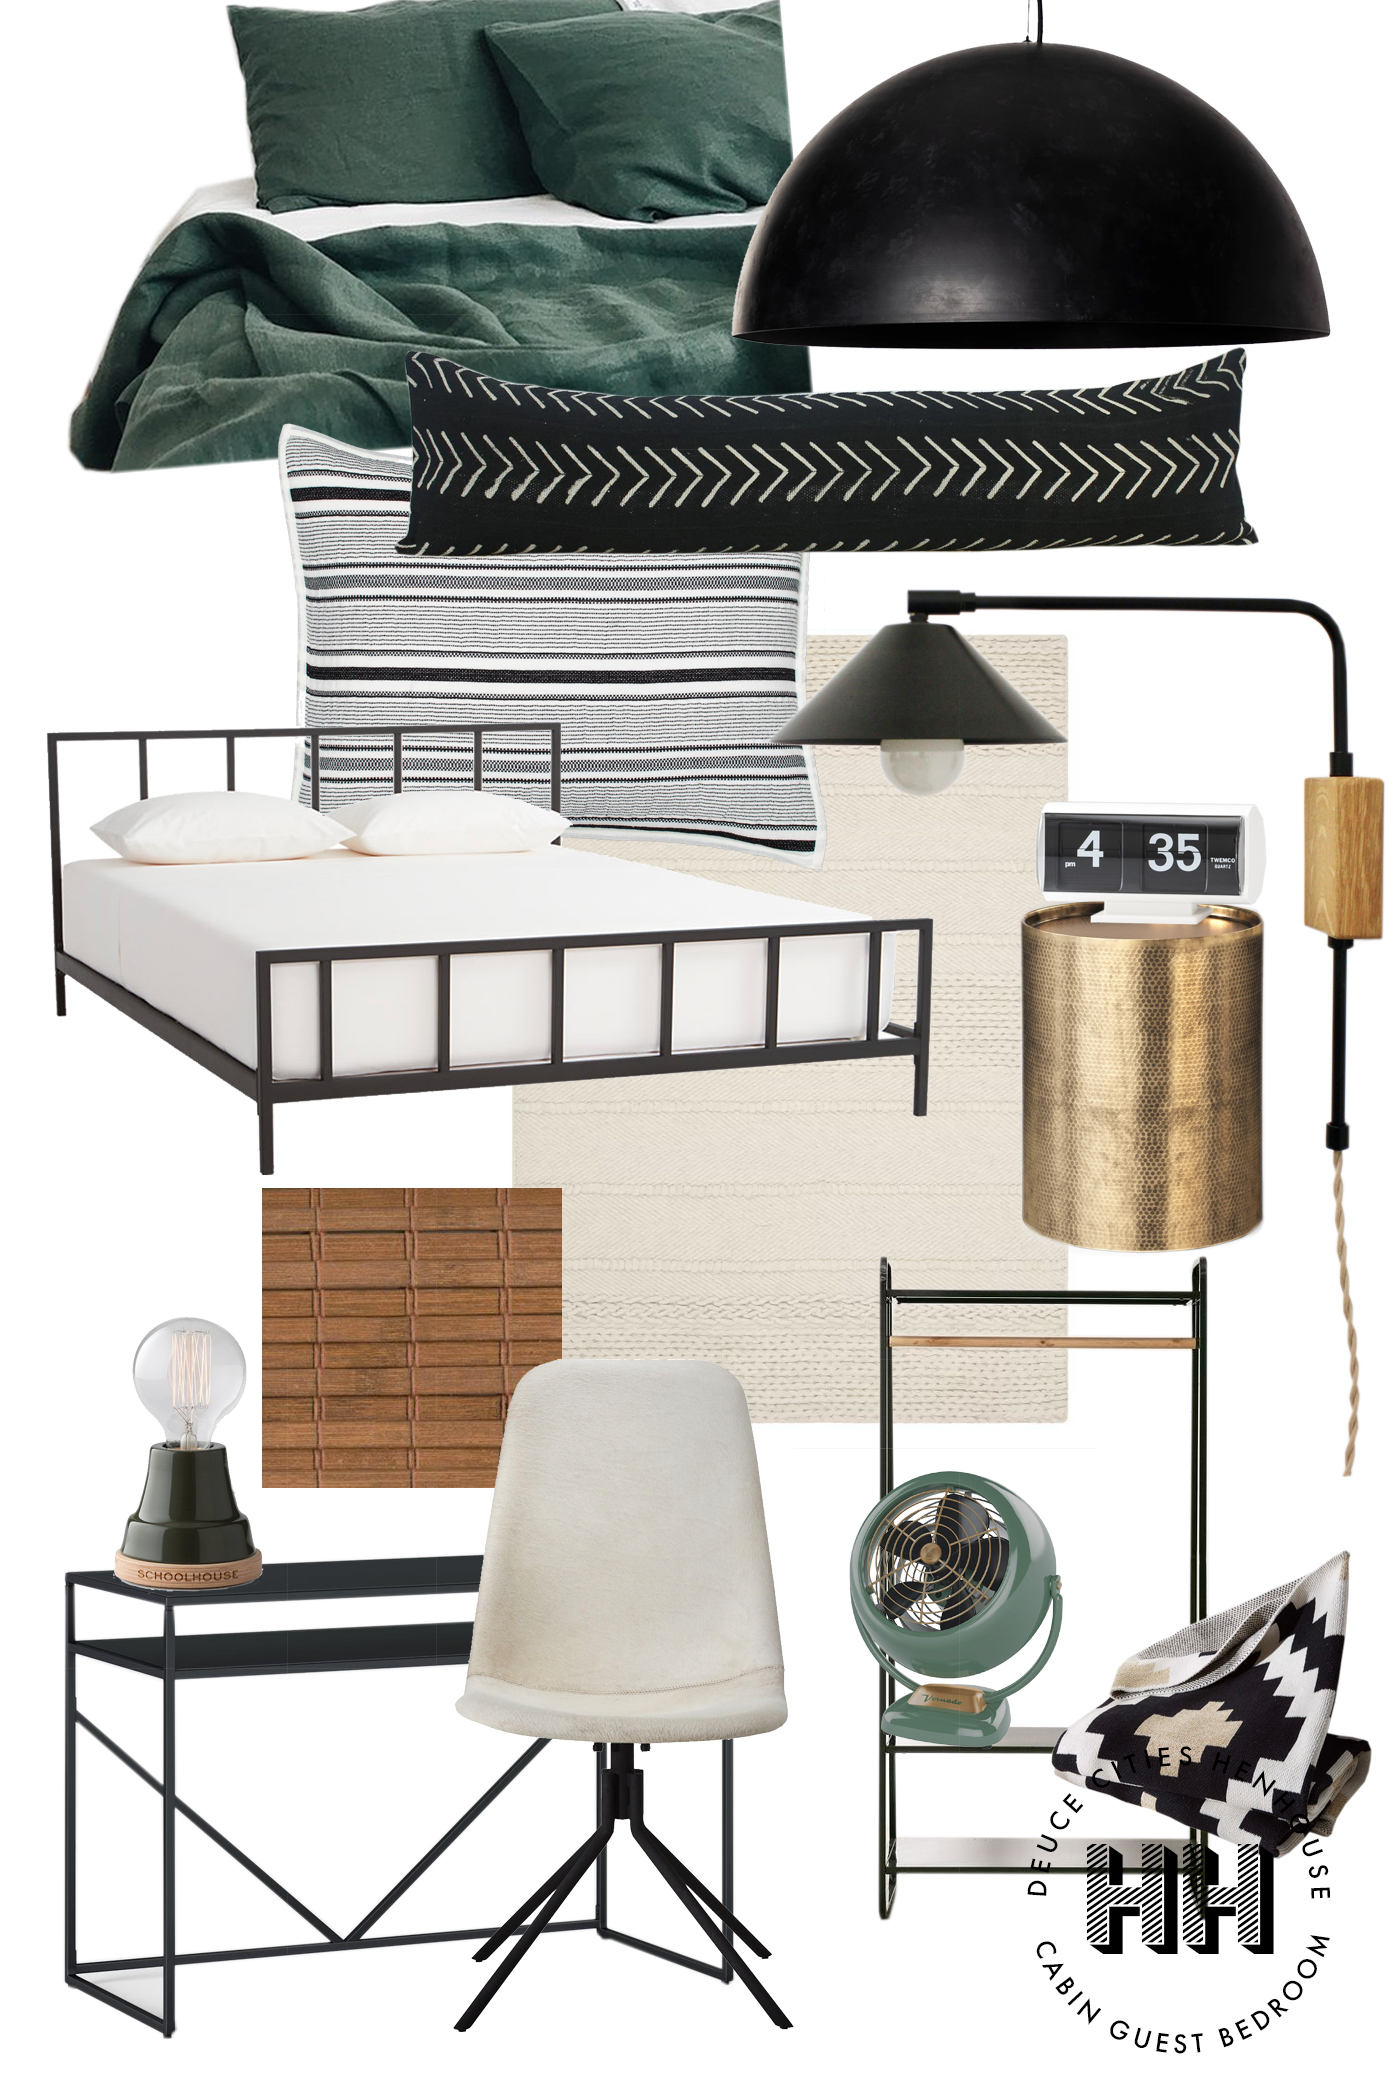 A Modern Green, Black and Brass Look for The Cabin Guest Bedroom